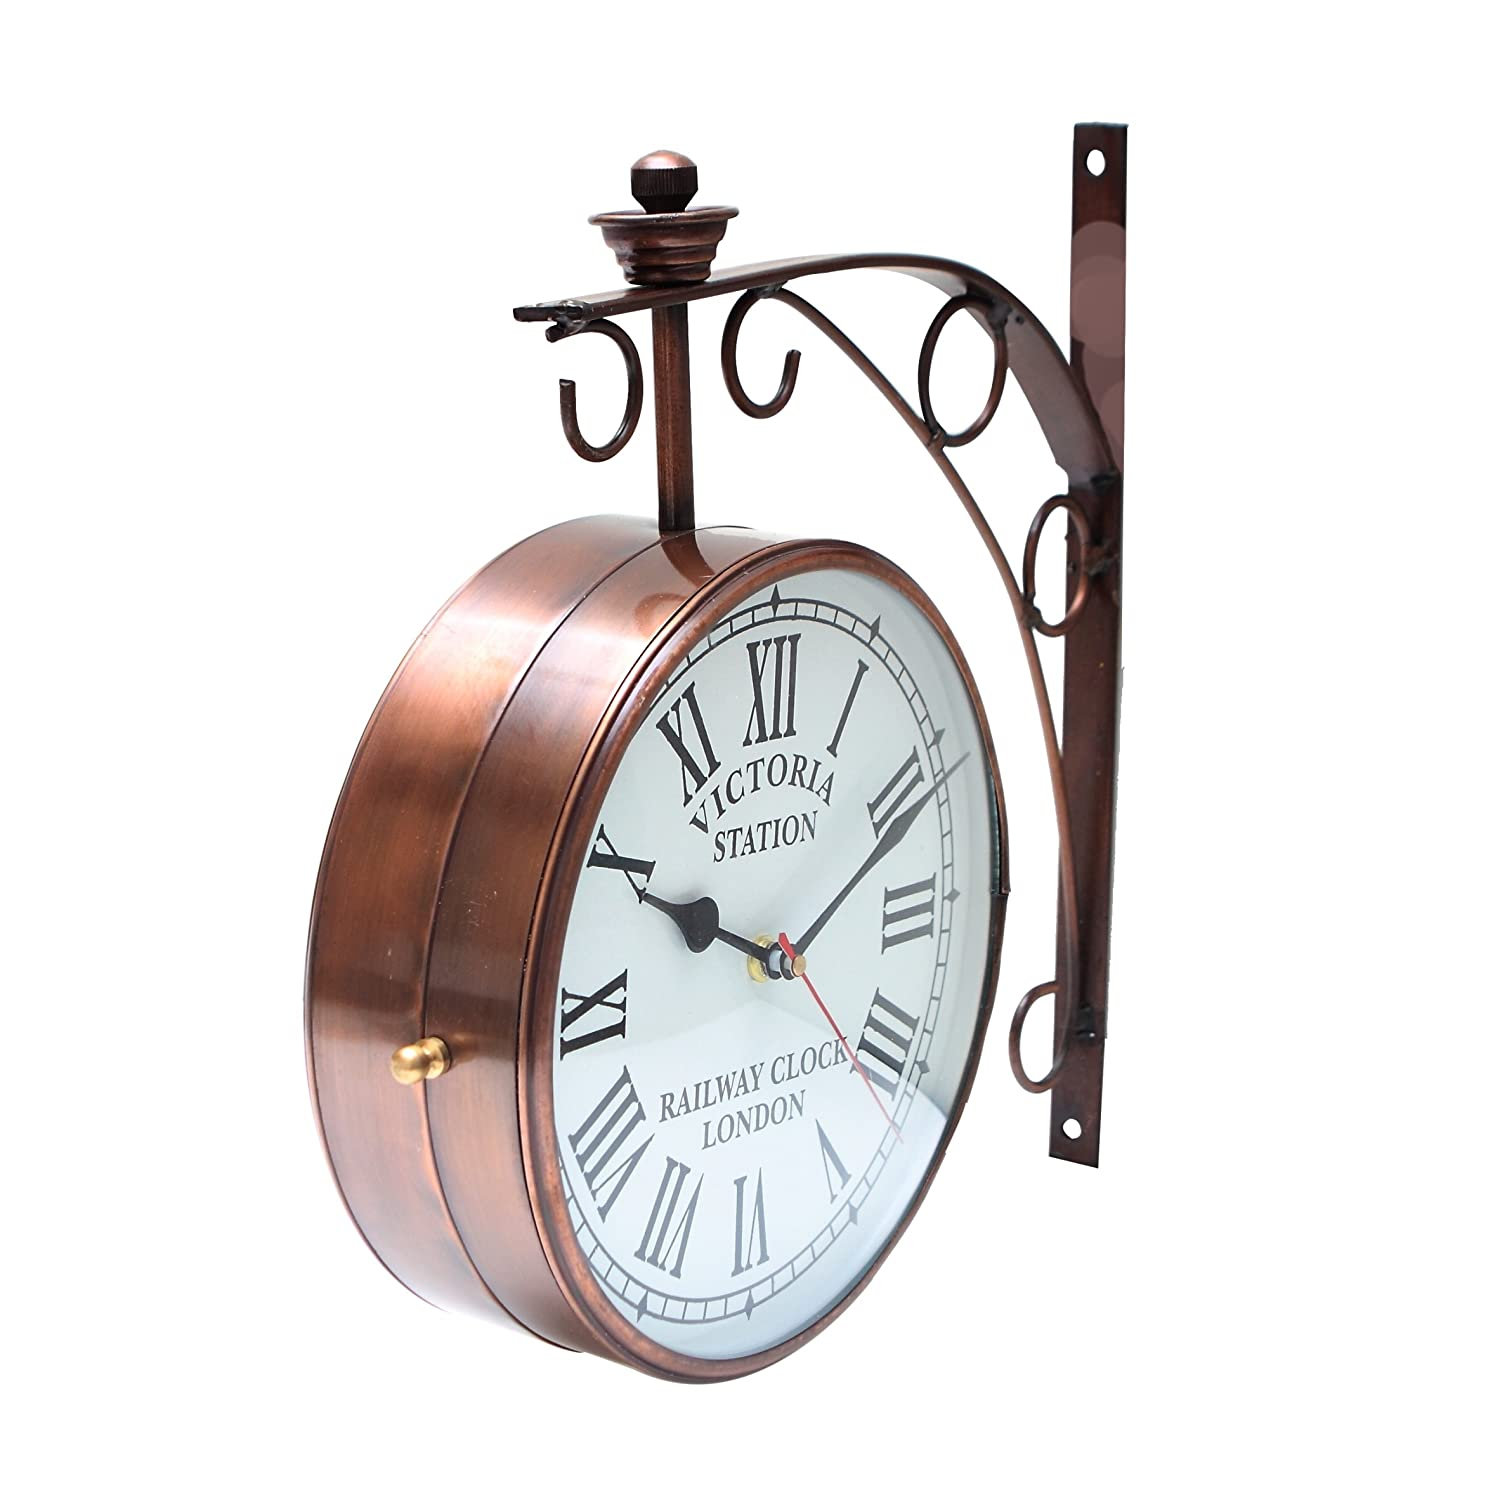 Buy bazaar pirates vintage style old style unique double side buy bazaar pirates vintage style old style unique double side antique railway station platform wall clock bronze 8 dia online at low prices in amipublicfo Gallery